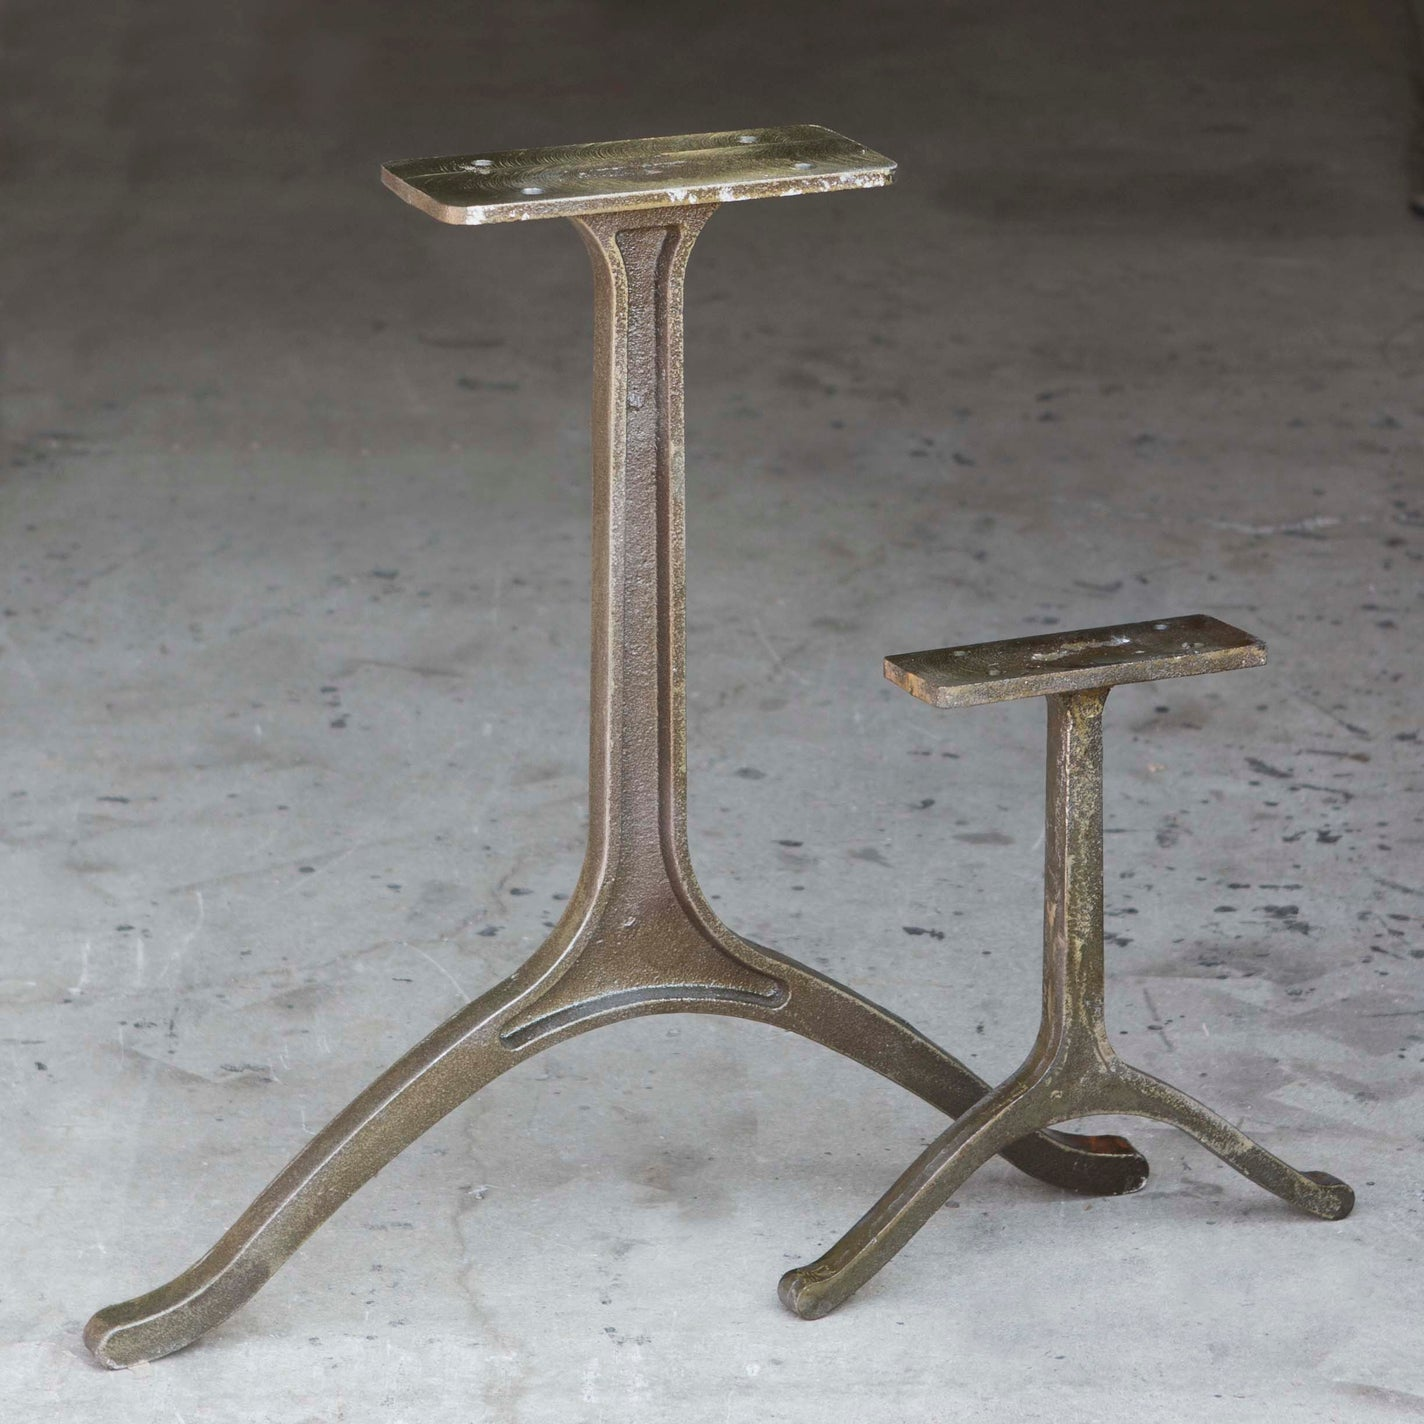 wb730 wishbone dining table legs cast iron 2 pack